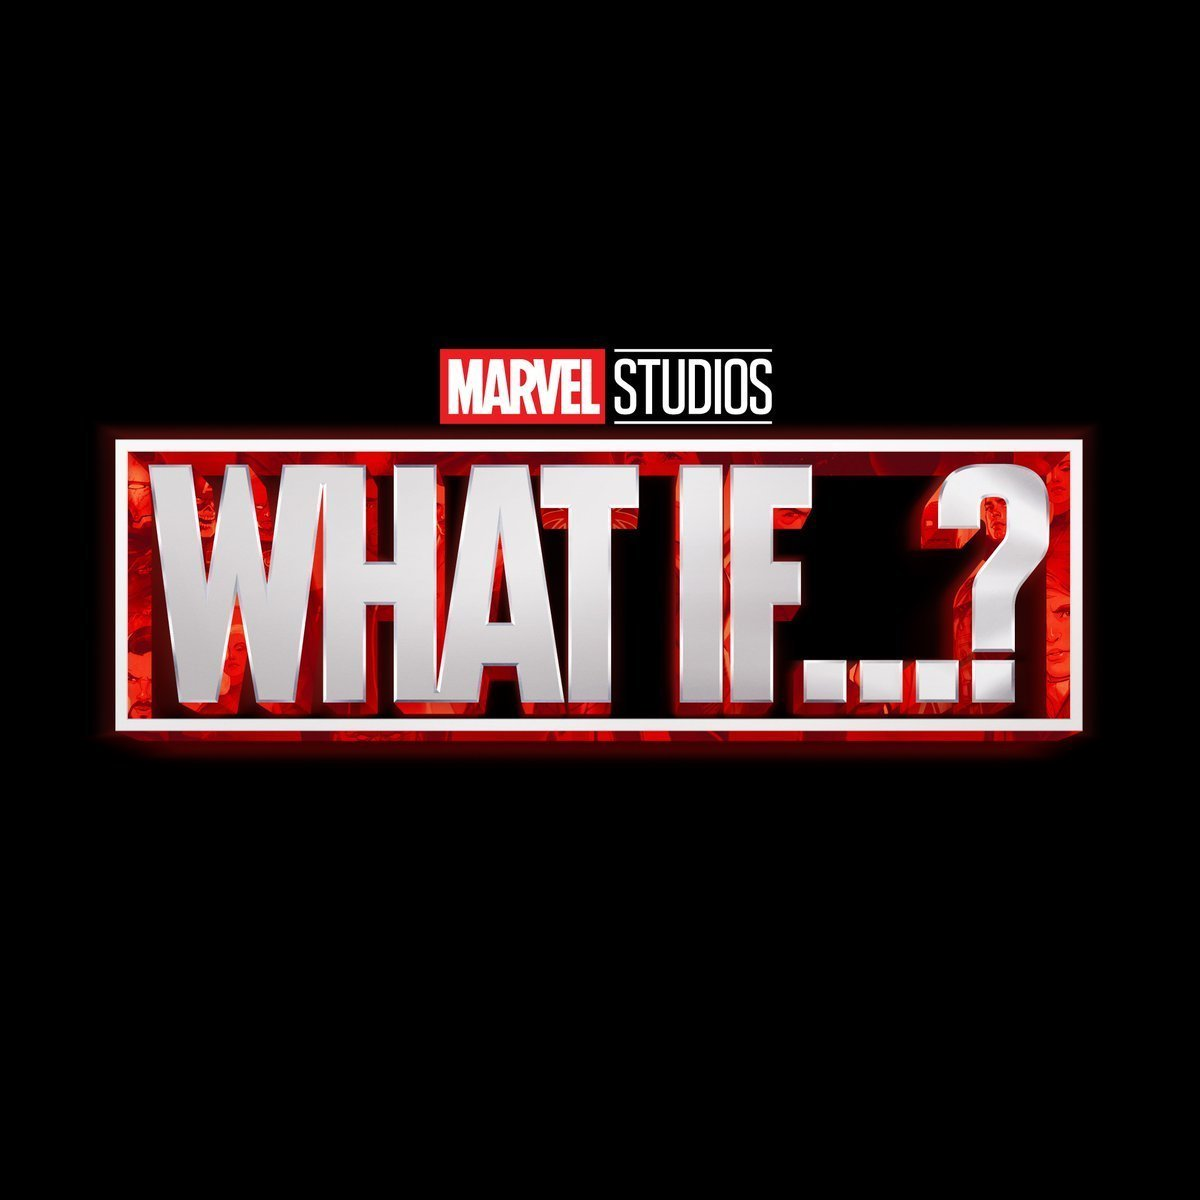 Le logo du Marvel Studios, What If...?